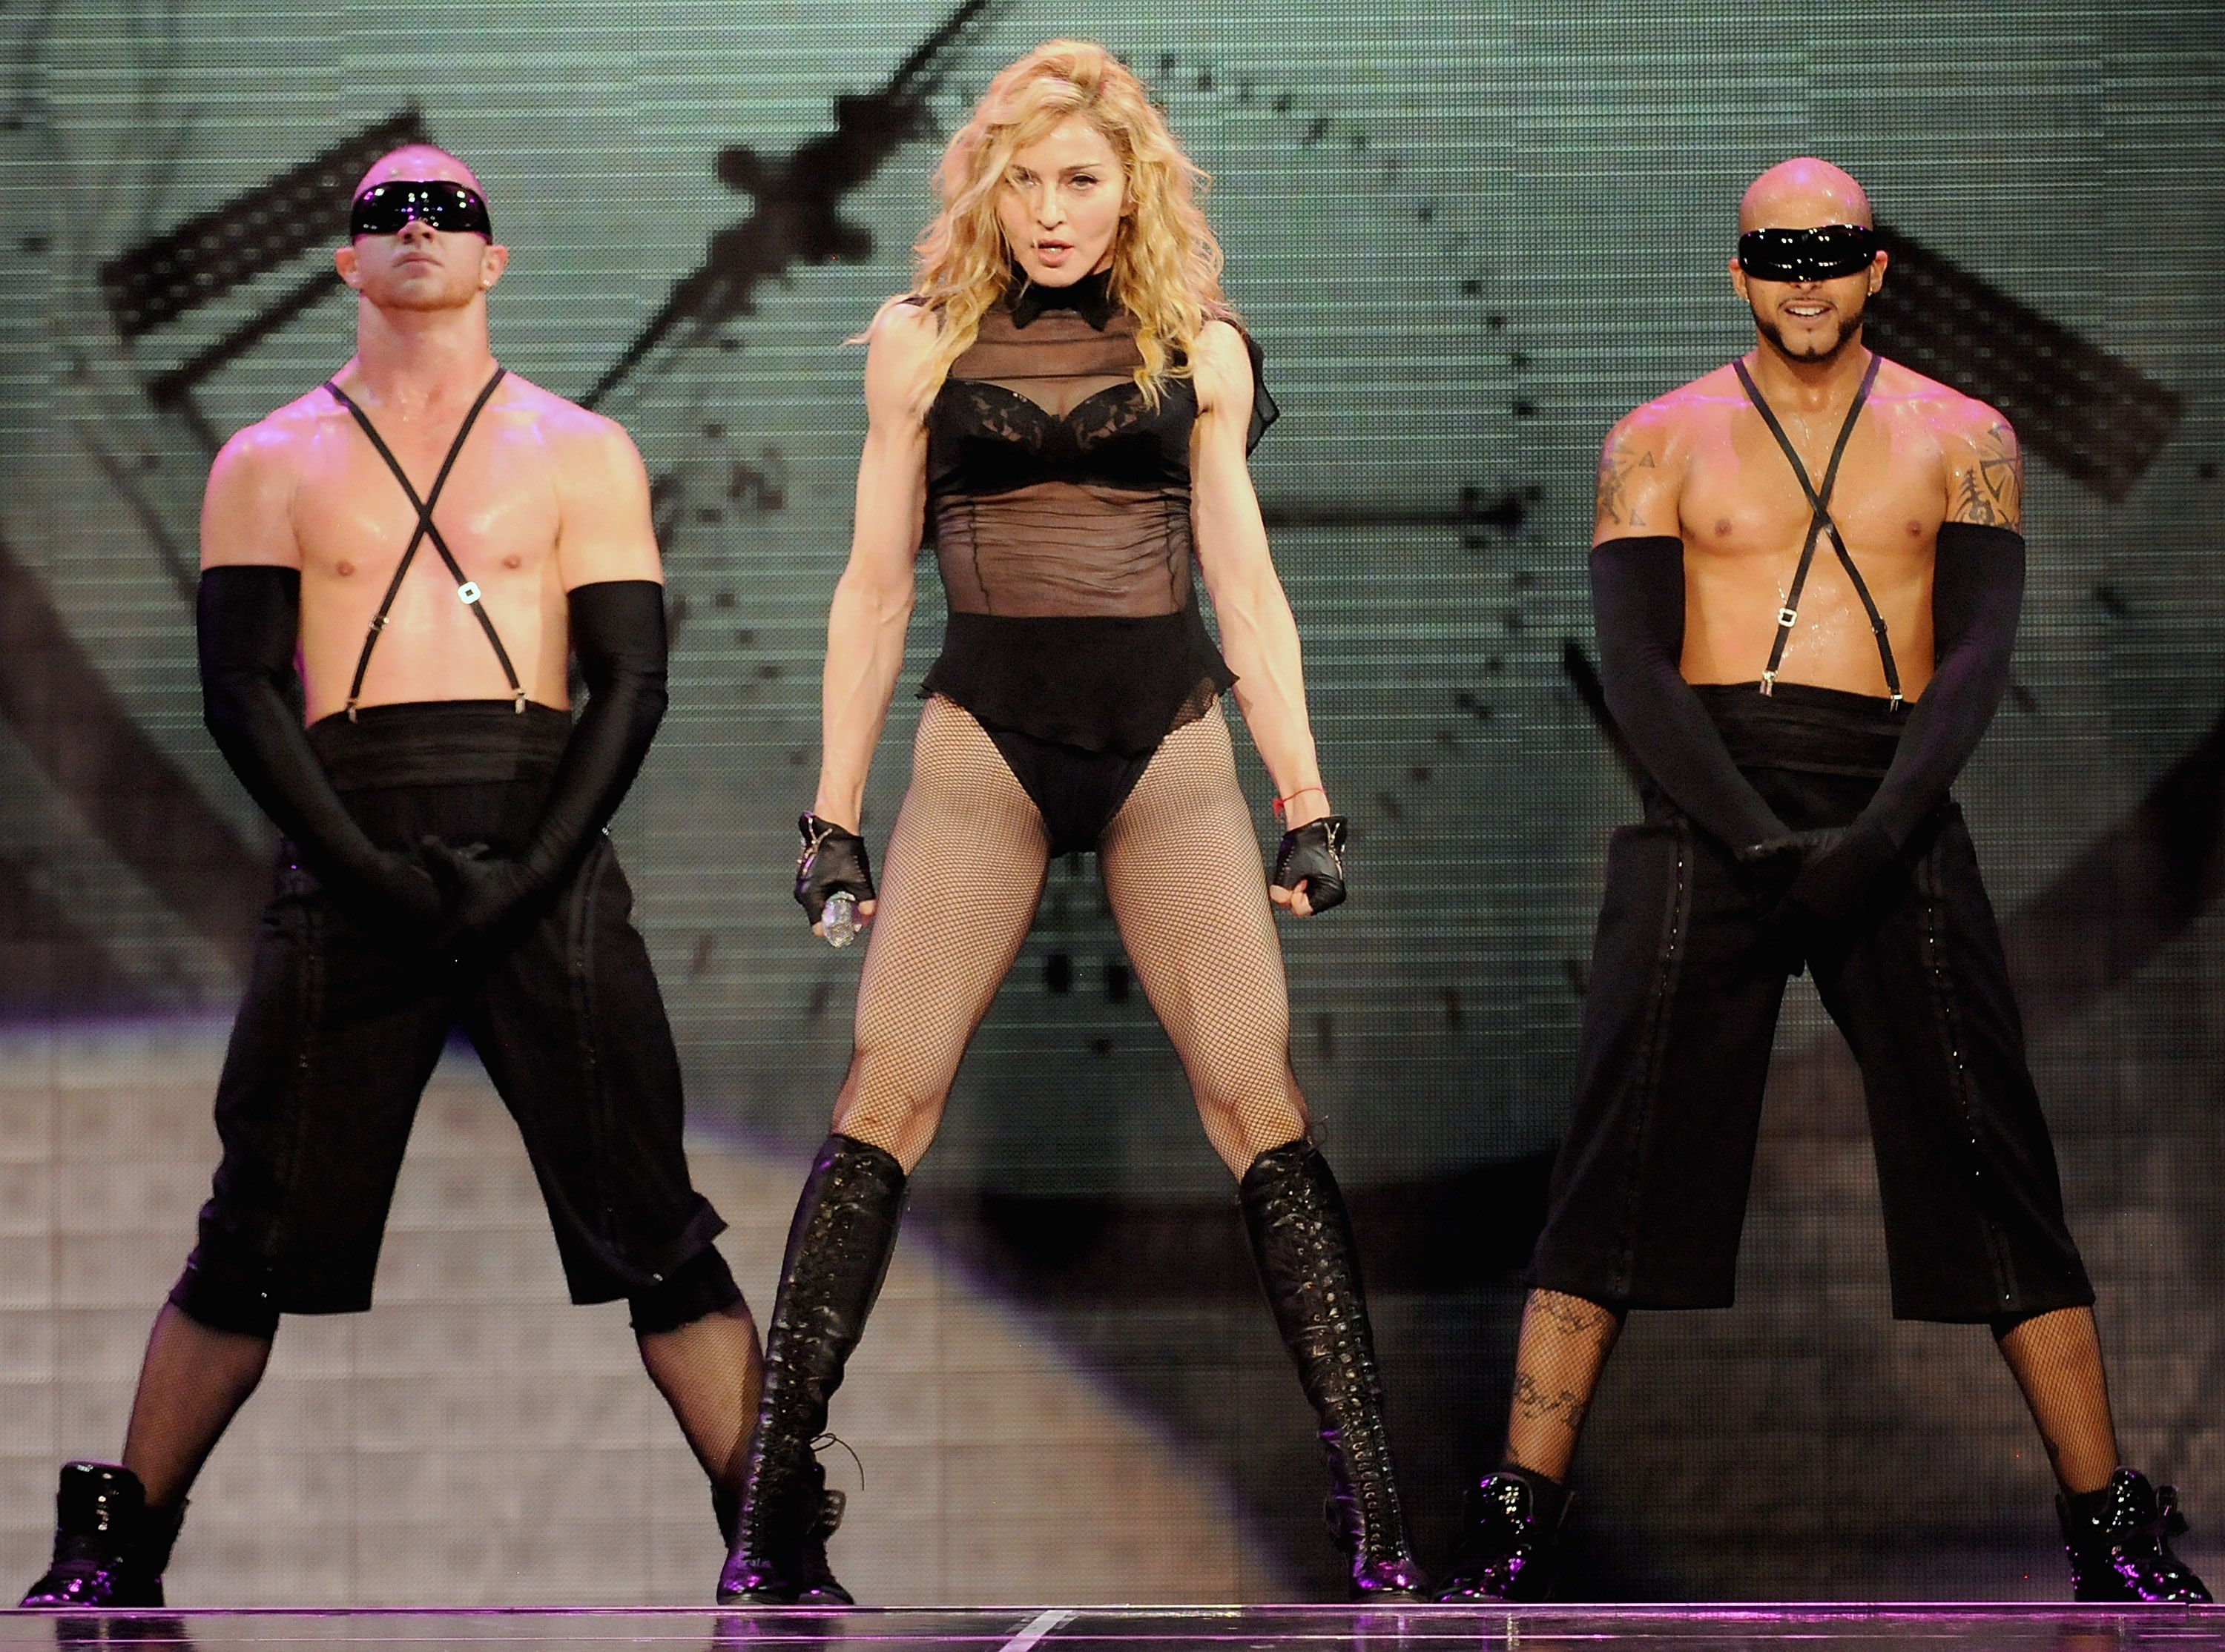 Holy-day! Madonna is confirmed to perform at Eurovision in Tel Aviv